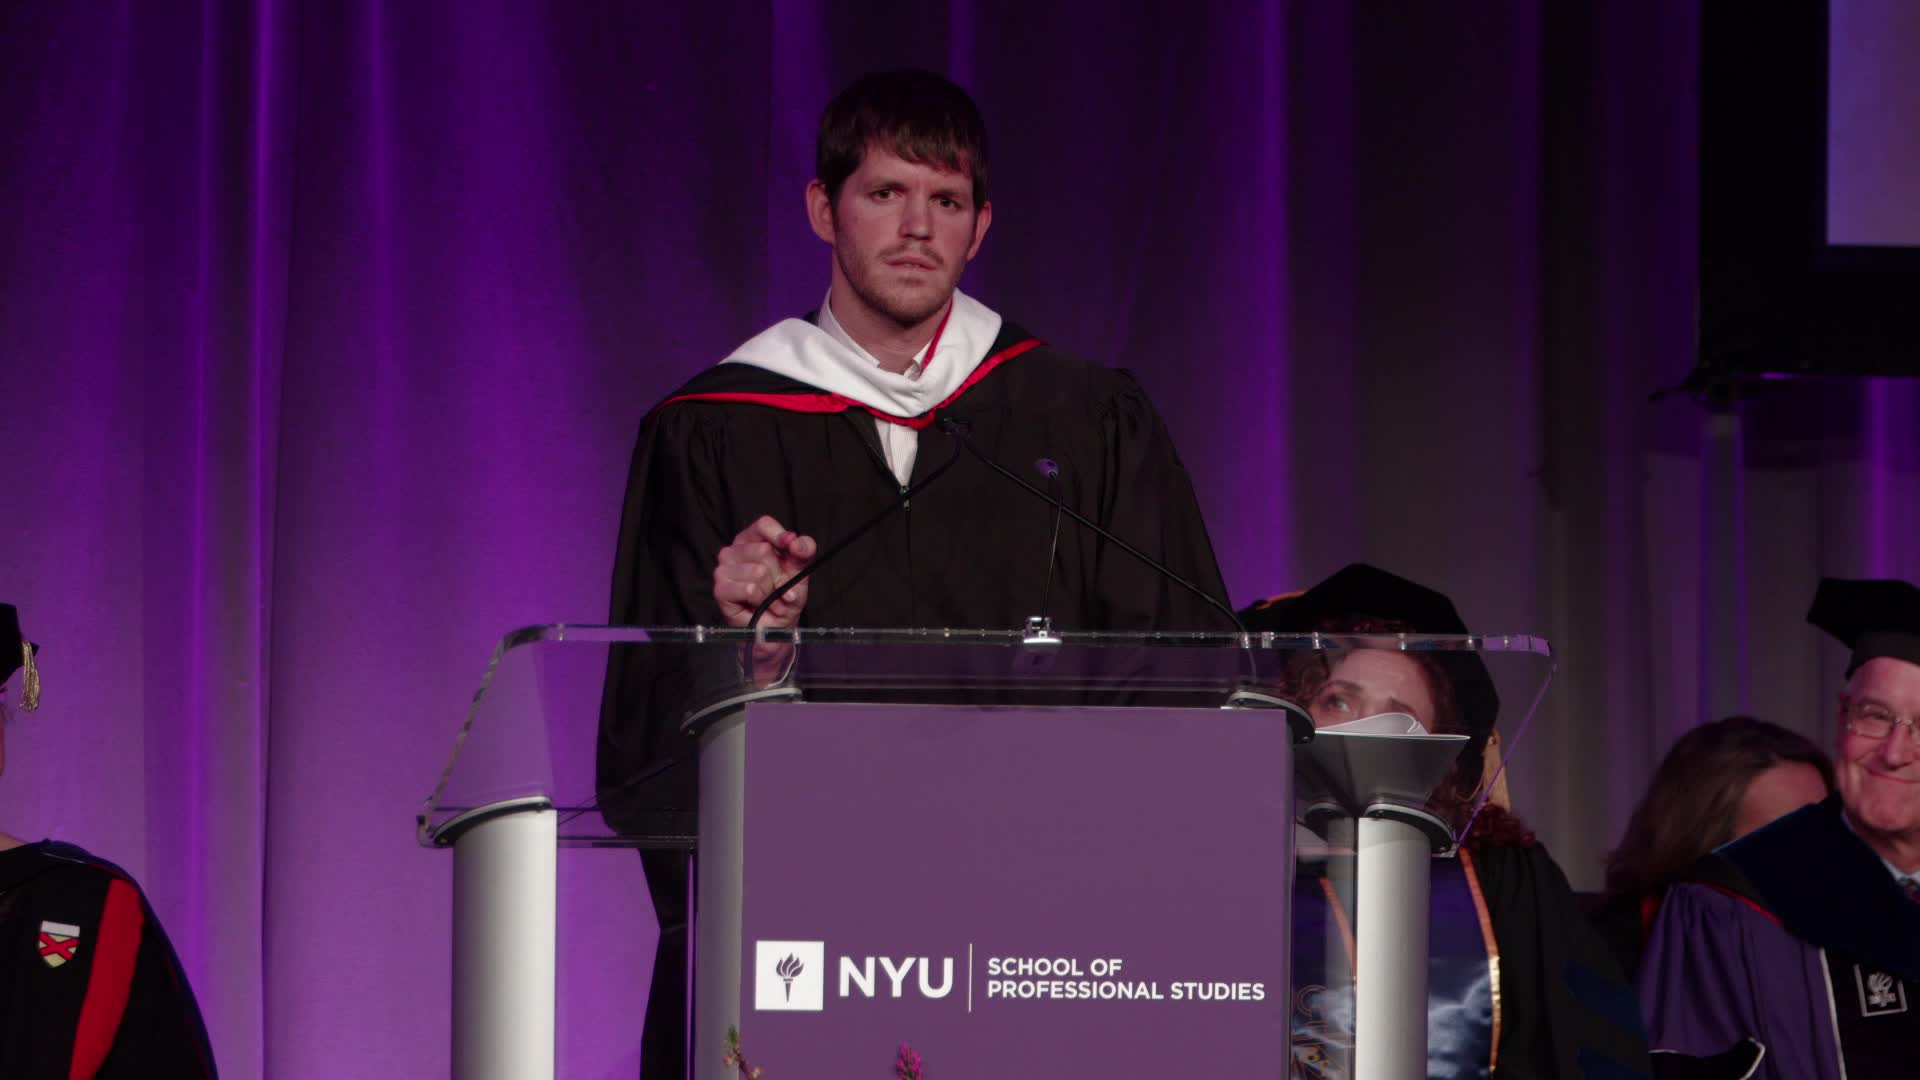 Acclaimed Photographer & Founder of Humans Of NY Brandon Stanton delivered a stirring speech to graduates of the NYU School of Professional Studies, who received their degrees at the Undergraduate Convocation ceremony on May 15 at the Grand Hyatt New York. He reminded students that time is the most valuable resource in the world and it should not be squandered. Instead, he urged them not to wait for their idea or plan to be perfect, but to take the step now to pursue their dreams. Credit: NYUSPS